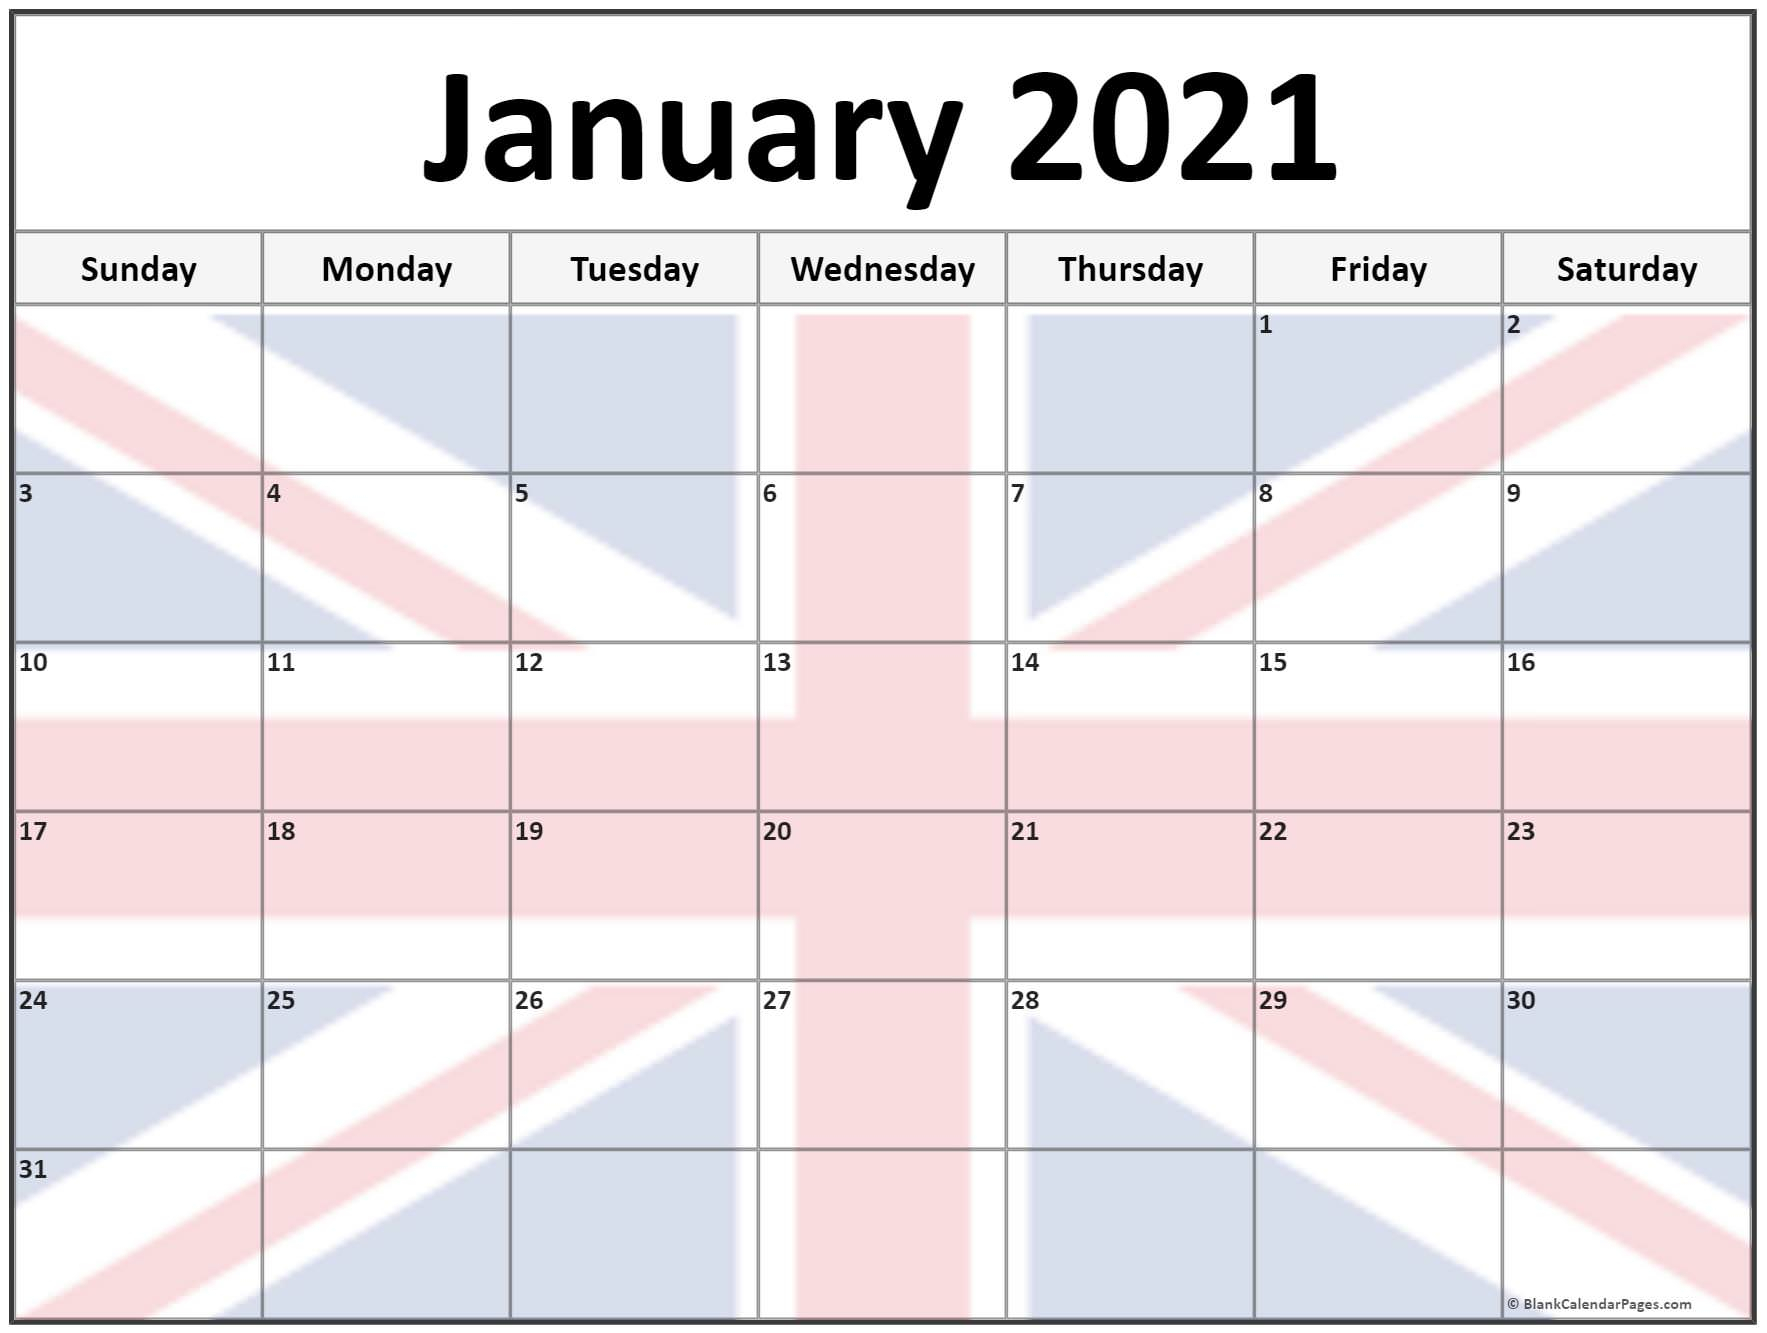 Collection Of January 2021 Photo Calendars With Image Filters.